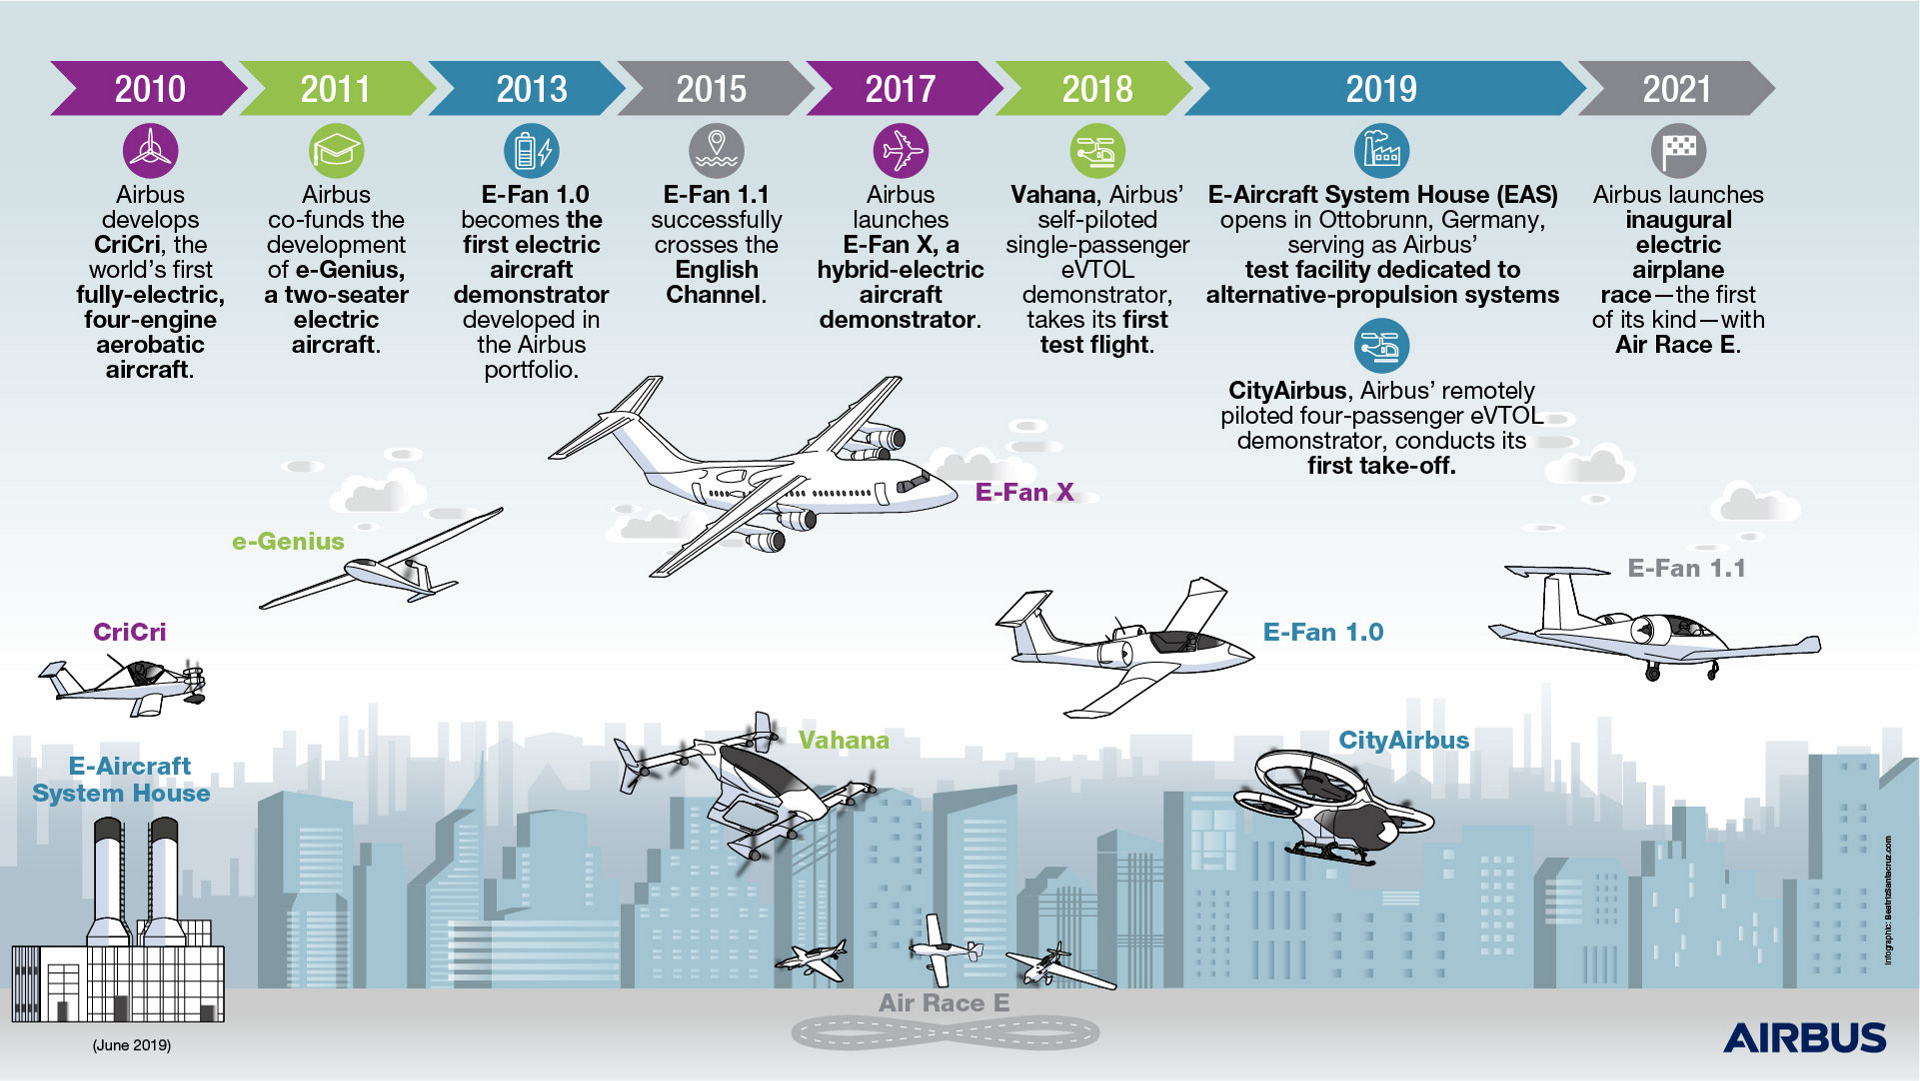 A timeline showing Airbus' many achievements in its development of innovative electric aircraft.